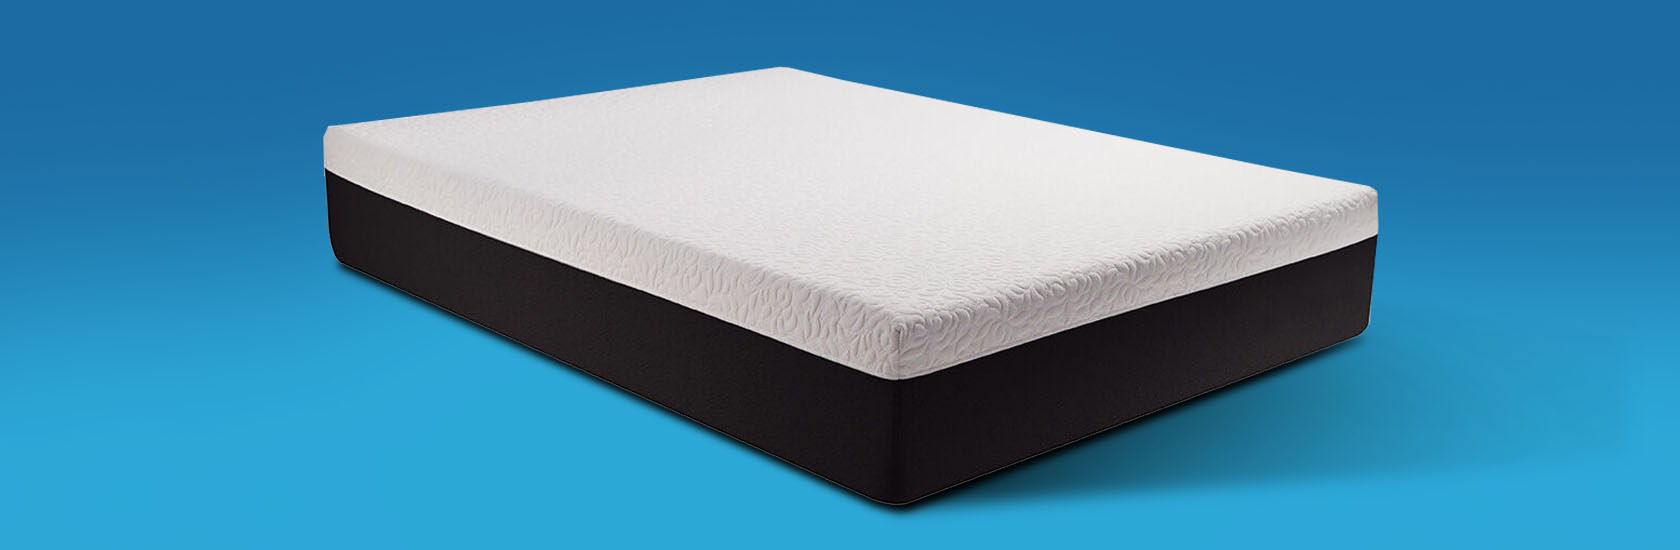 Better Sleep with New Mattresses & Toppers